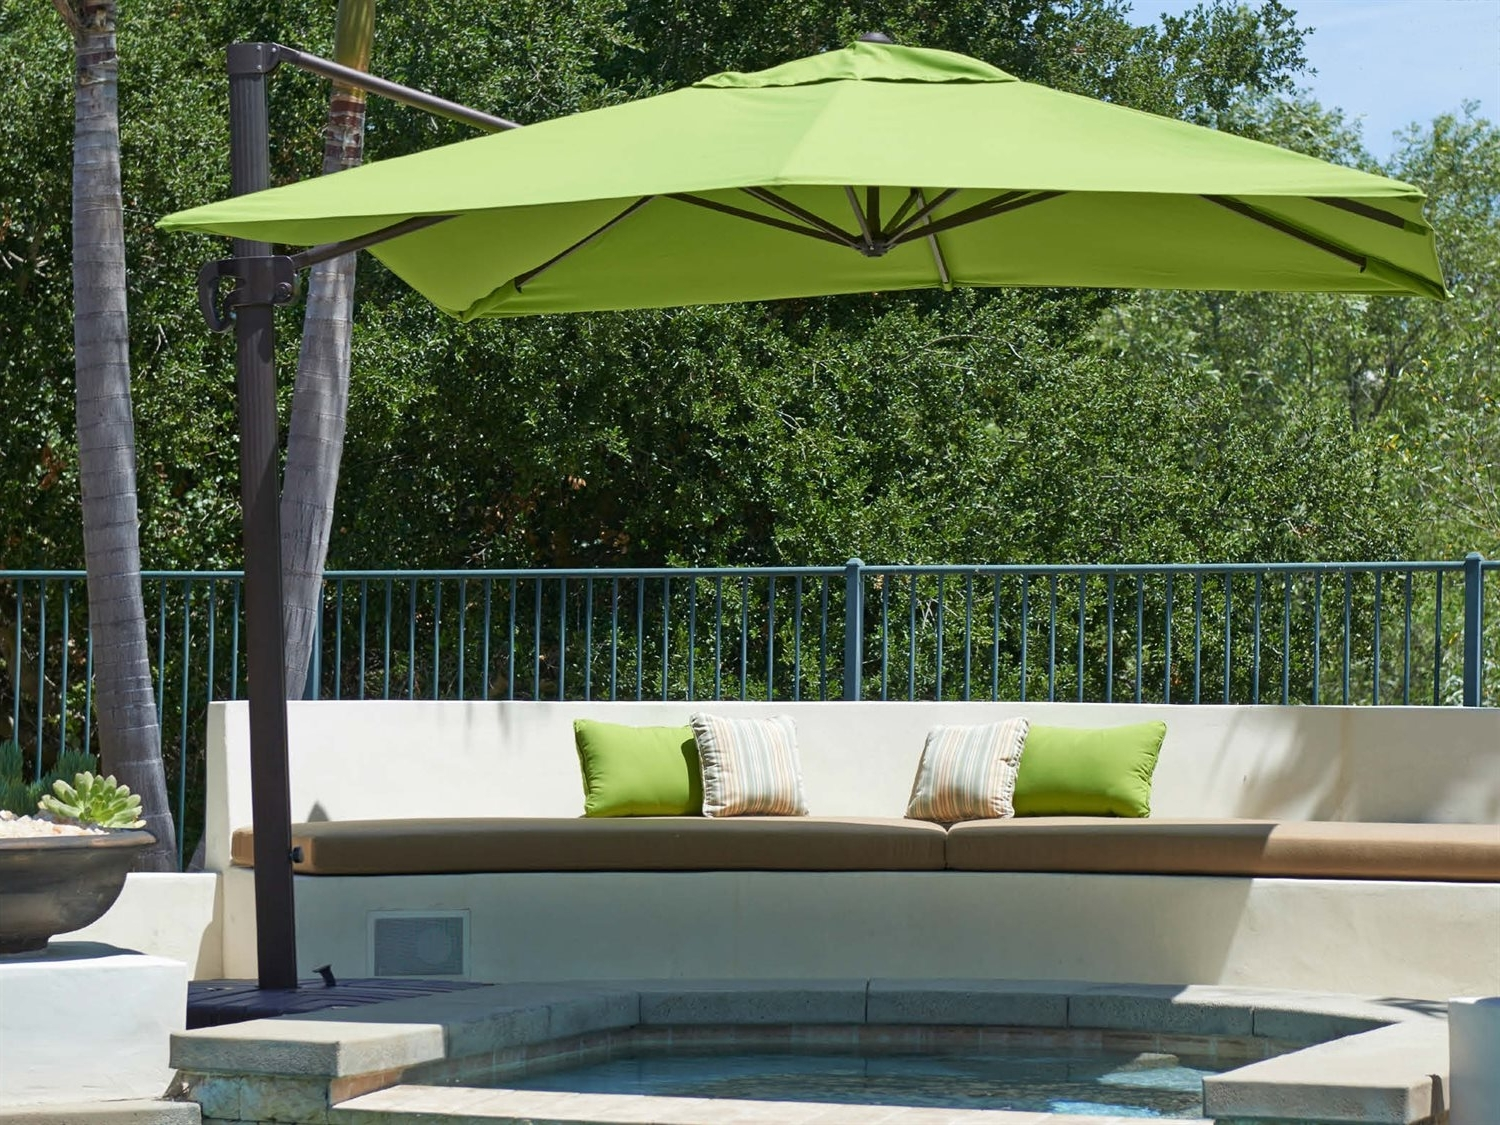 Most Recently Released Rectangle Patio Umbrellas Intended For Garden: Enchanting Outdoor Patio Decor Ideas With Patio Umbrellas (View 14 of 20)